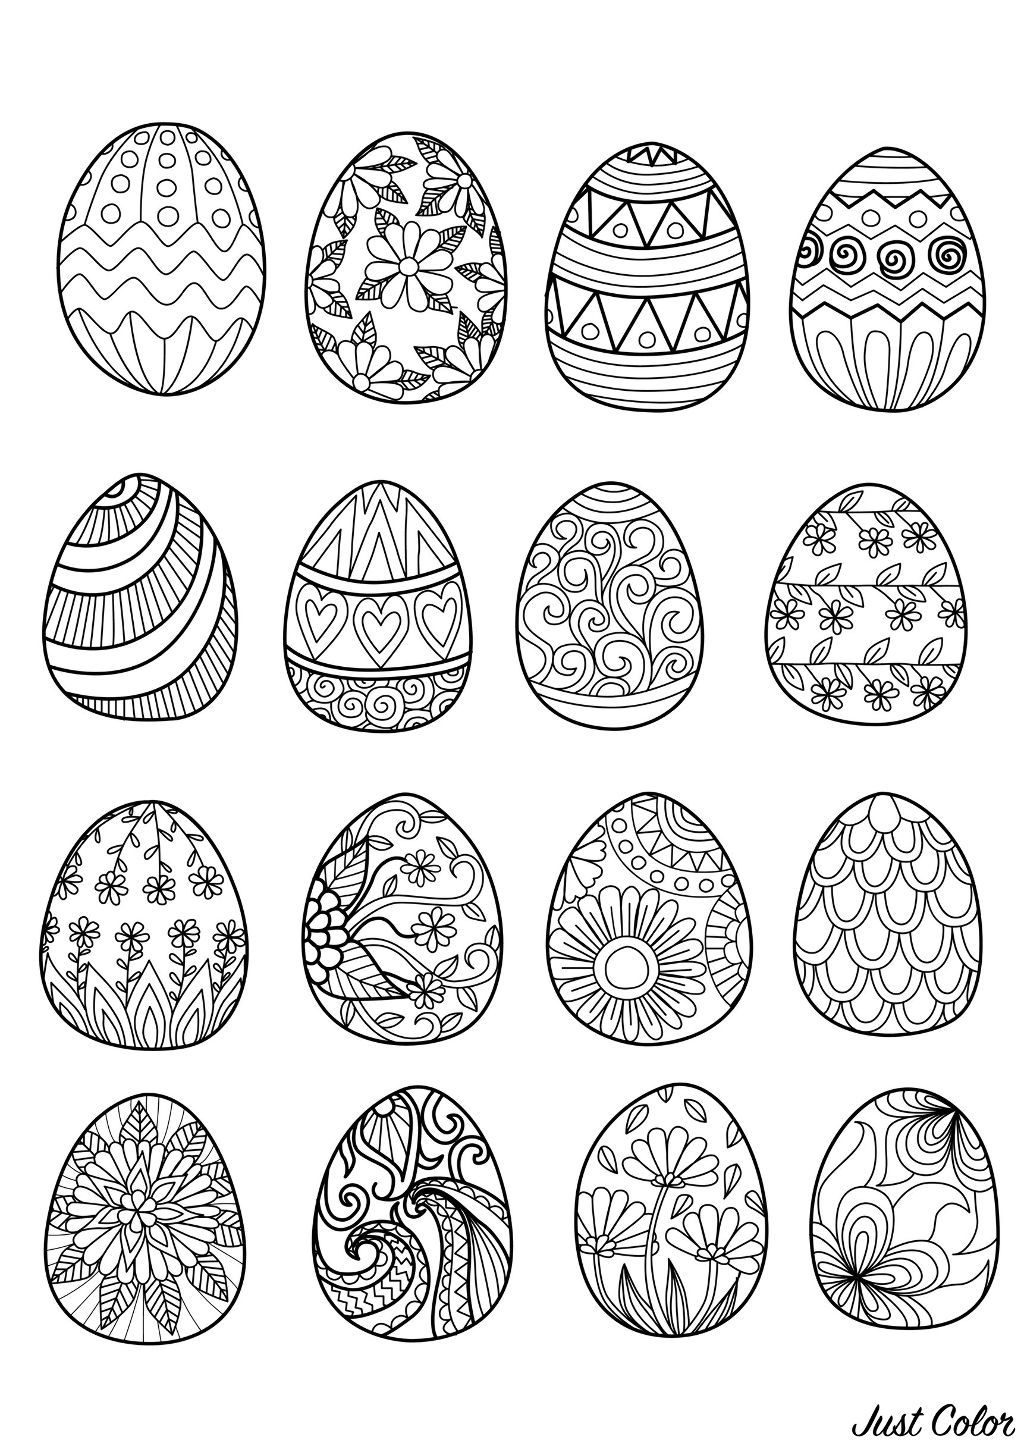 16 Easter eggs to print and color : various styles & ornaments